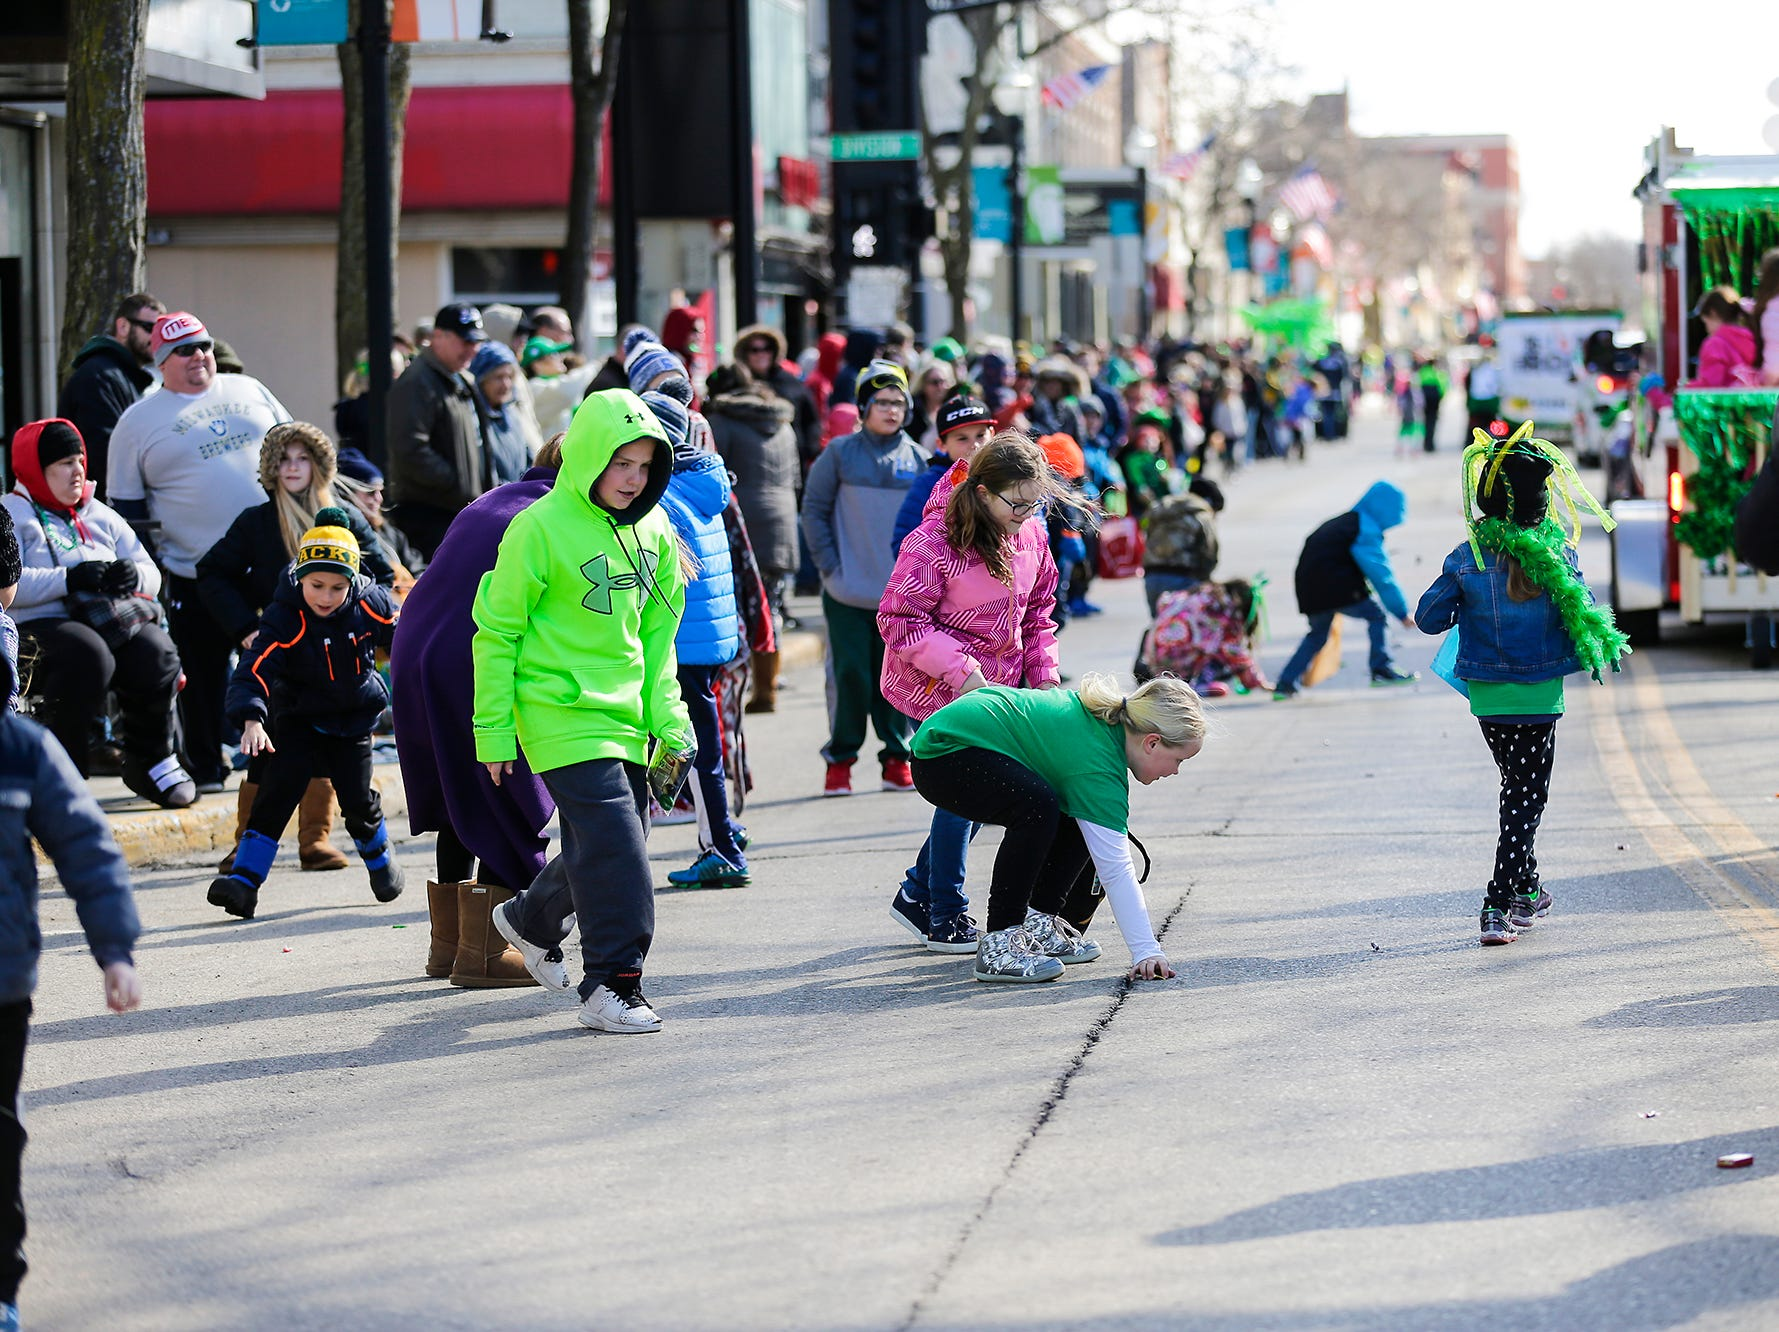 Hundreds of people lined the street Saturday; March 16; 2019 on Main Street in downtown Fond du Lac to watch the City of Fond du Lac St. Patrick's Day Parade .; Doug Raflik/USA TODAY NETWORK-Wisconsin